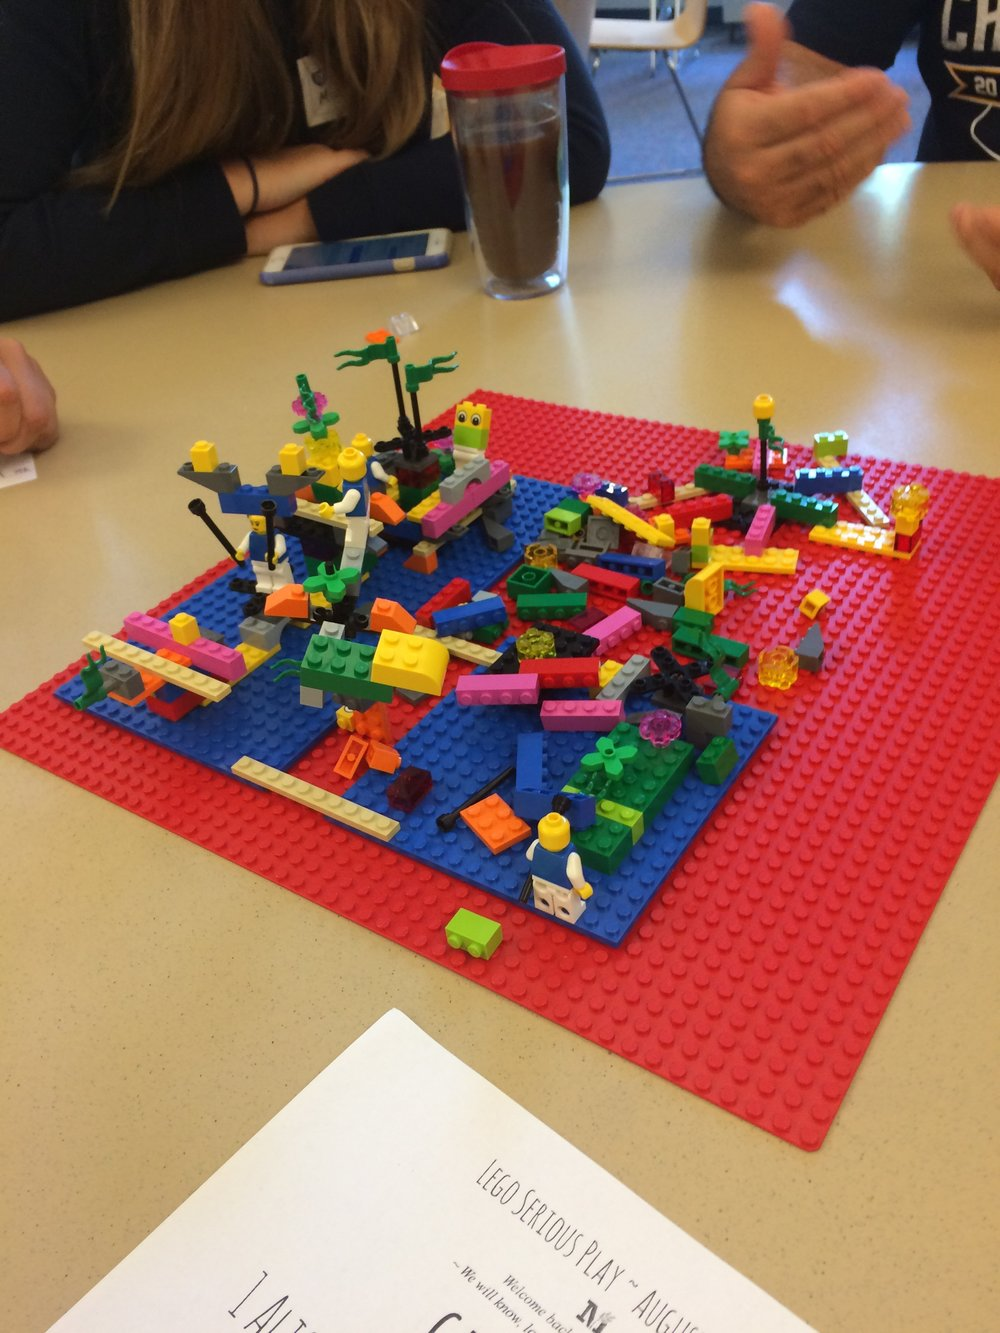 Discussing what collaboration means using LEGO bricks as metaphors.